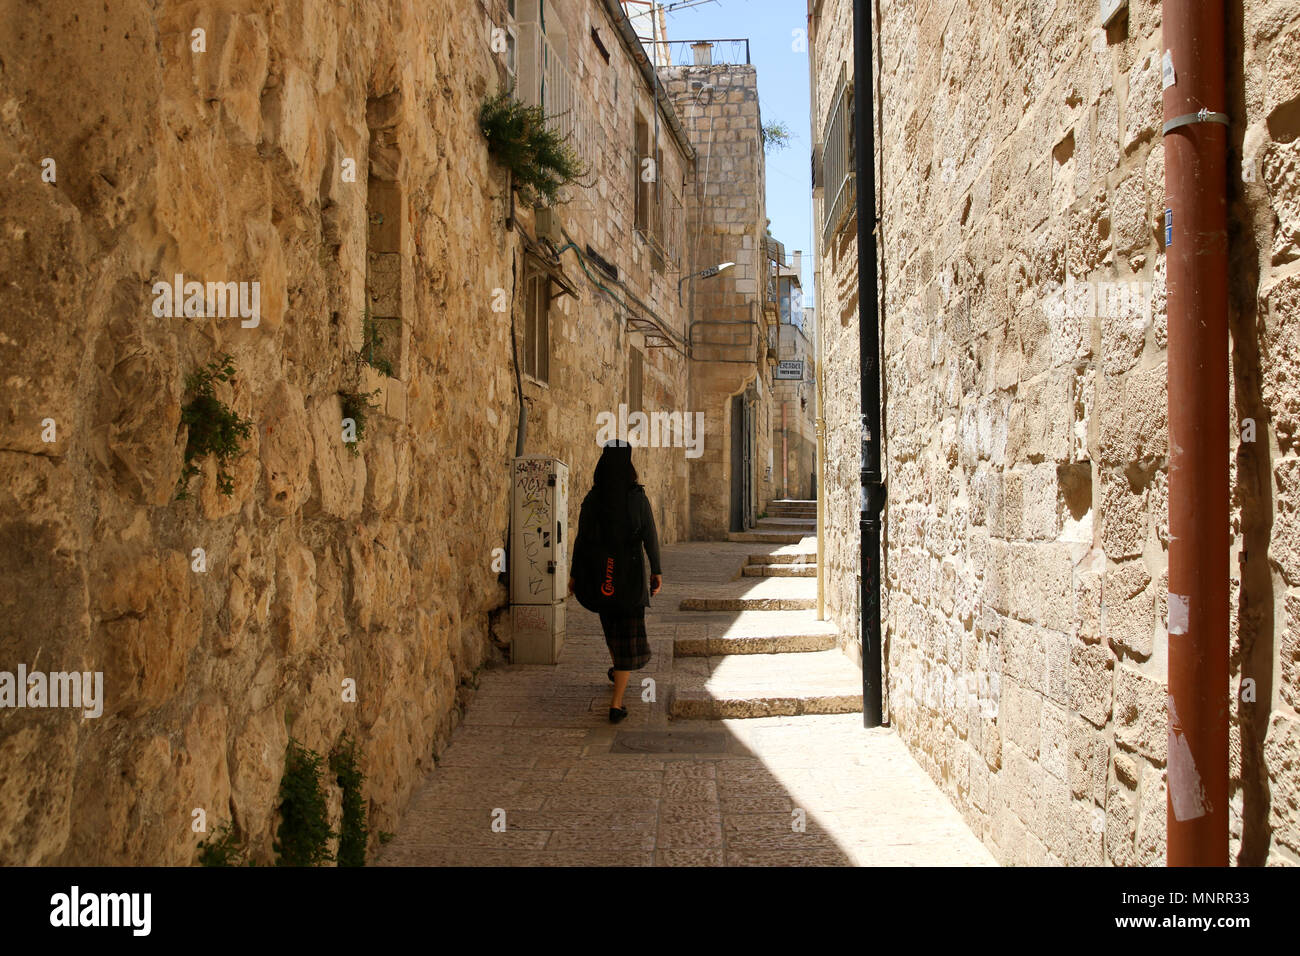 Jerusalem, Israel - May 16, 2018: A woman dressed in black walks in the midday sun through the old city of Jerusalem, Tel Aviv. - Stock Image